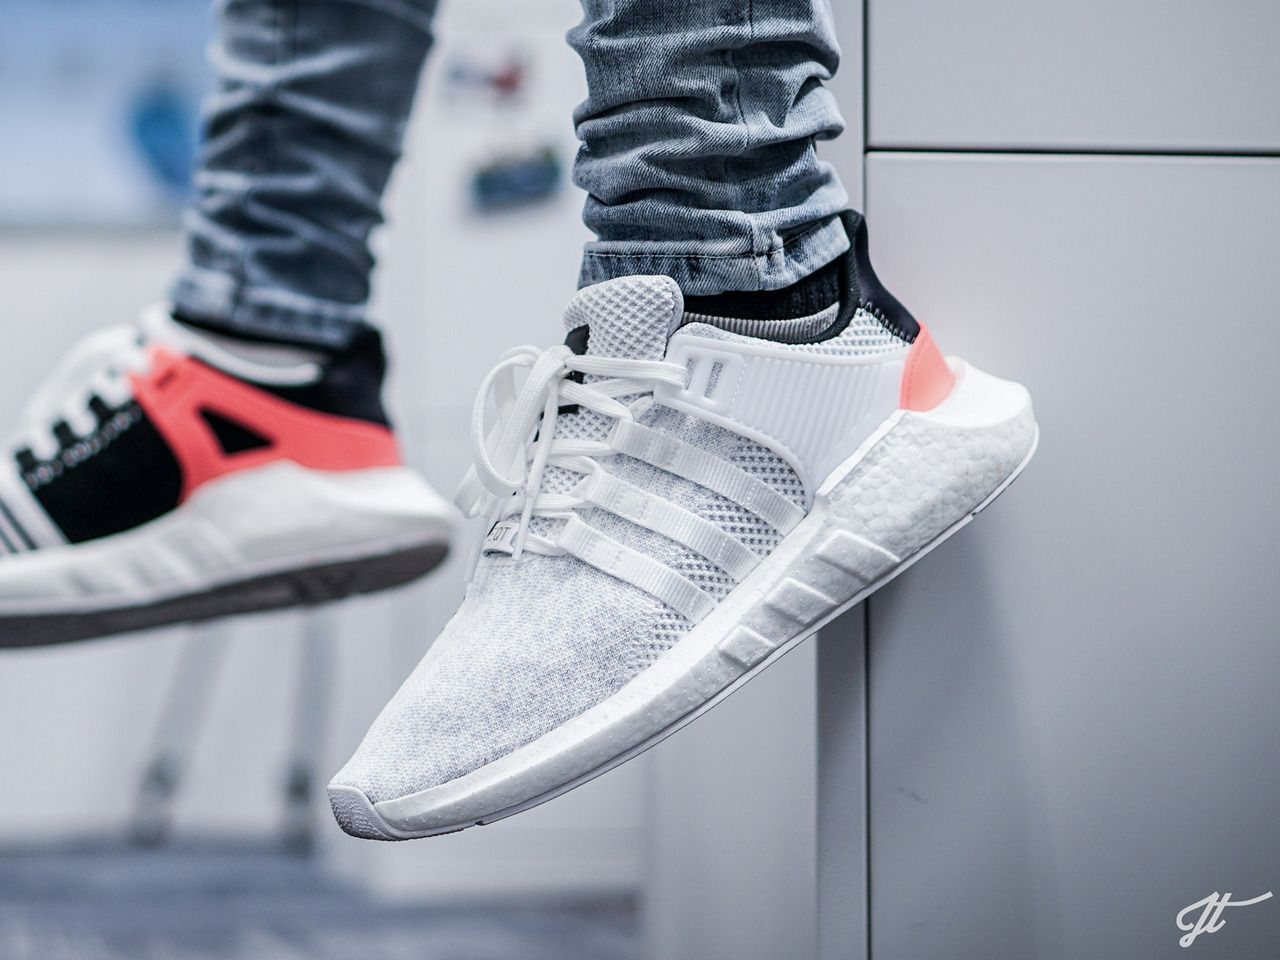 online retailer 2e064 e5494 Adidas EQT Support Boost 93 17 - White Turbo Red - 2017 (by jht3) Keep  kicks fresh with Sole Trees PRM shoe tree  ShoeTree  SoleTrees  ShoeTrees